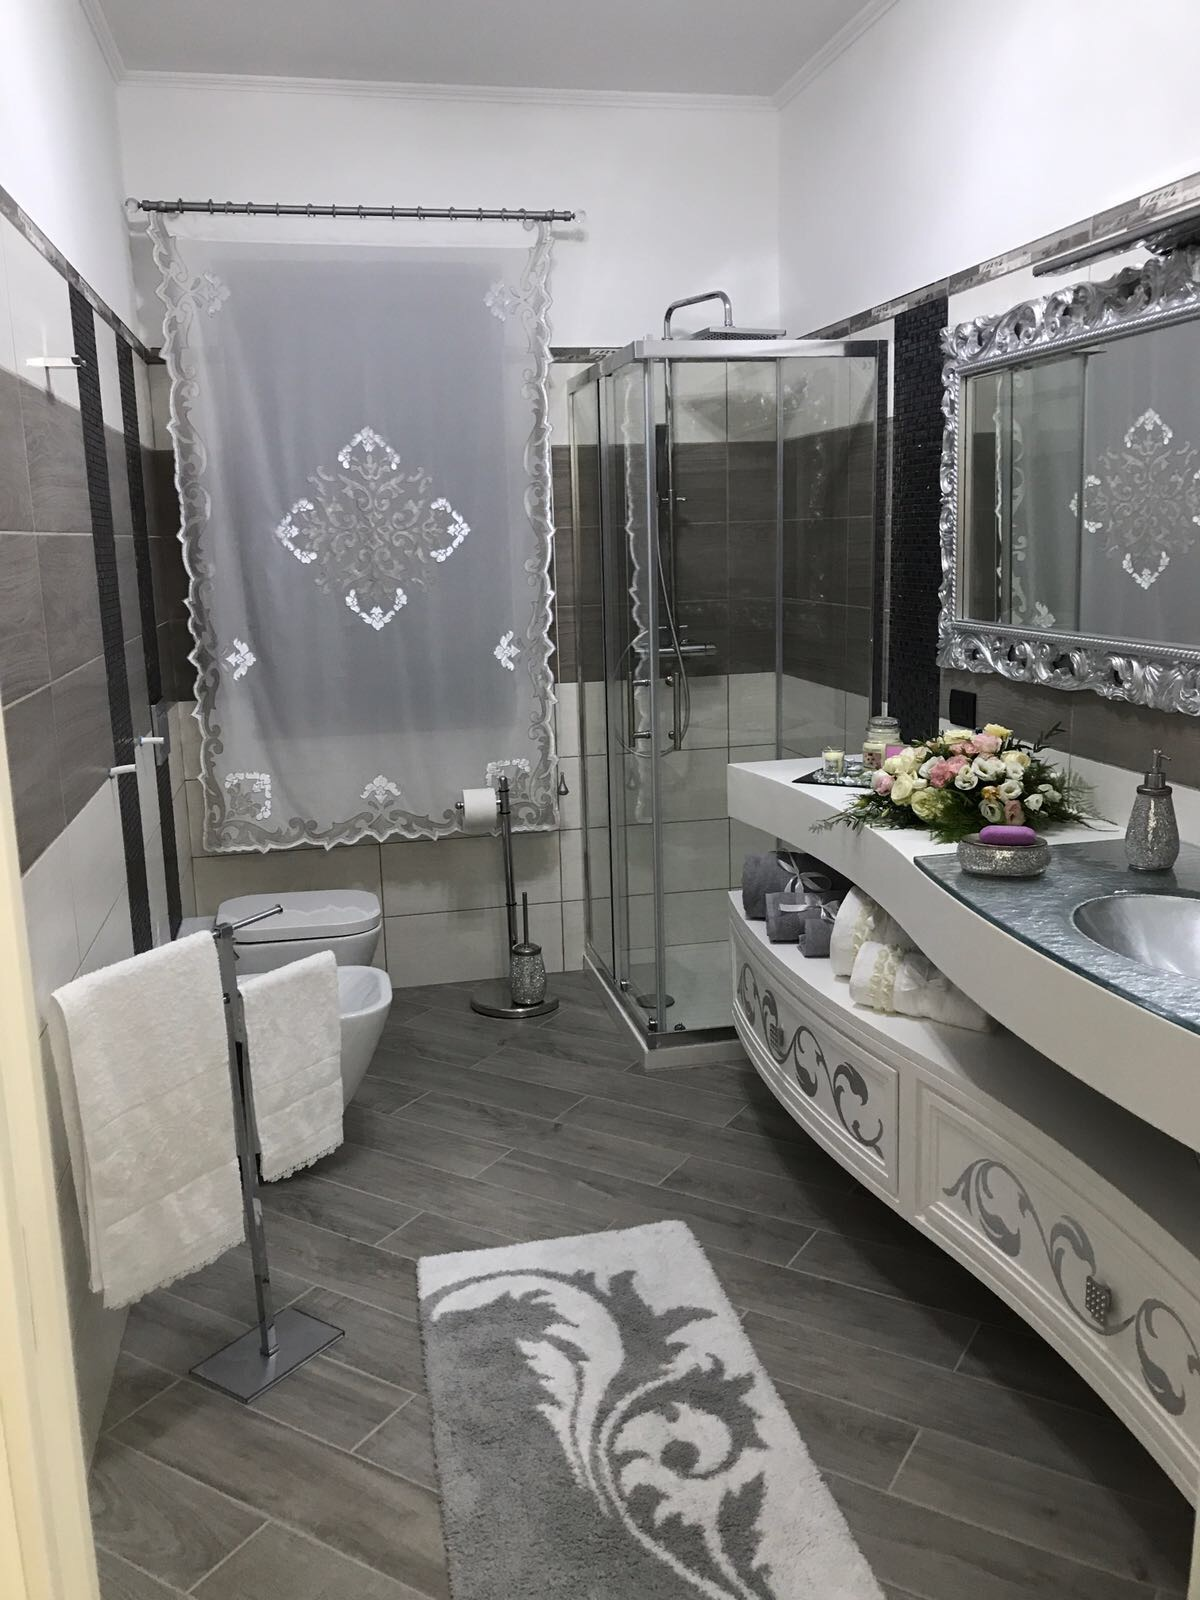 Lilium customized bathroom